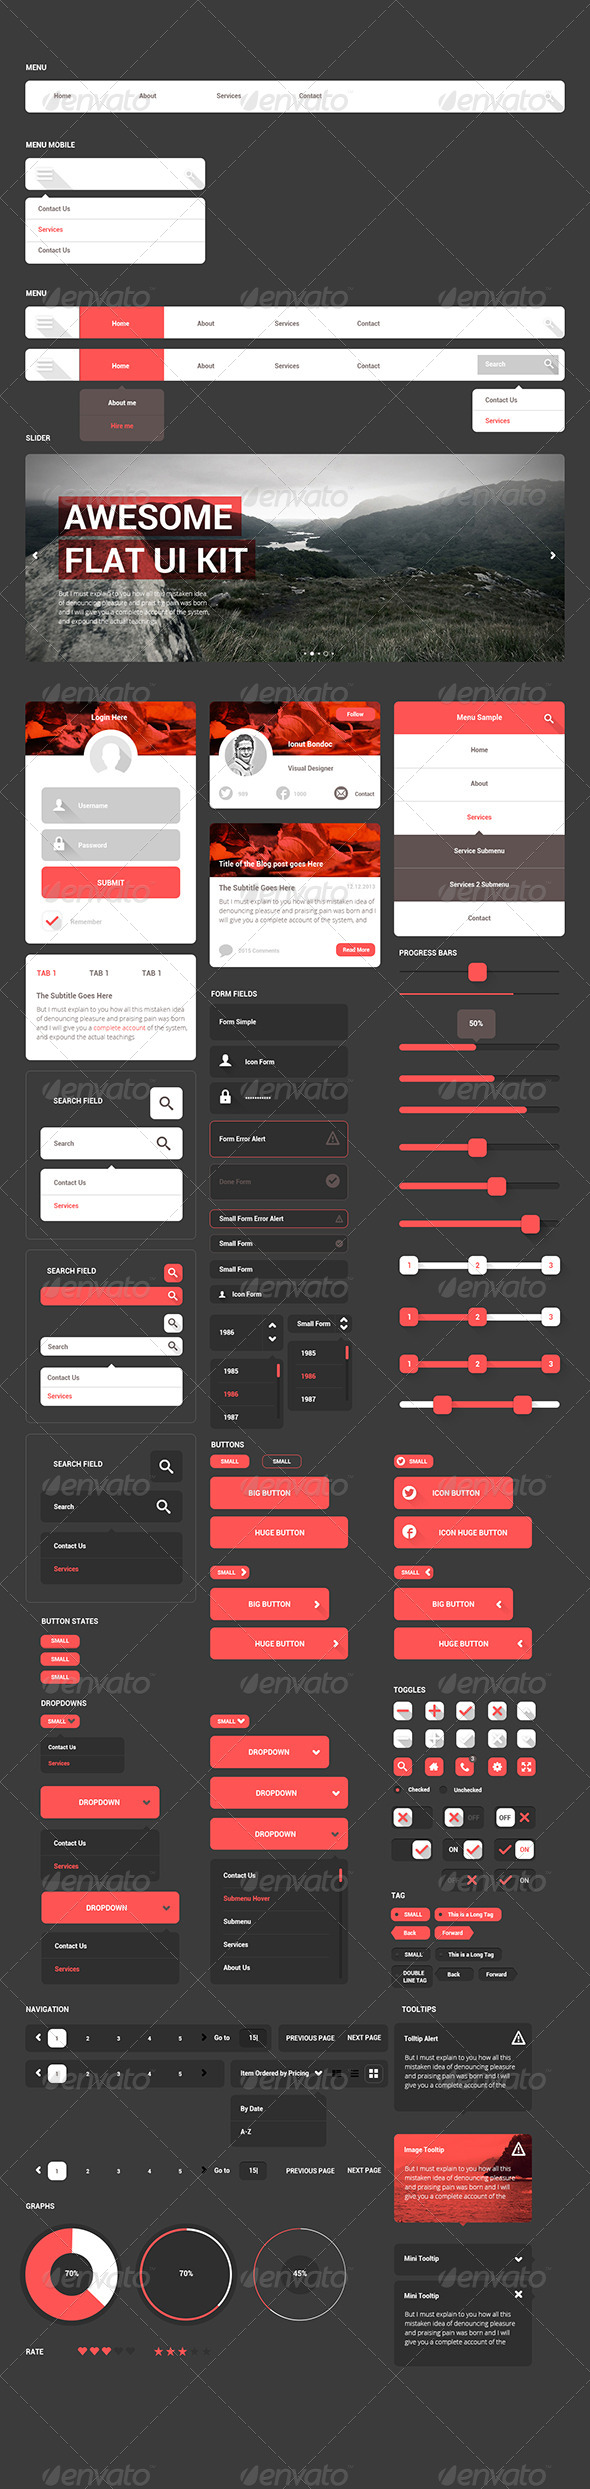 GraphicRiver Awesome Flat Ui Kit 7259329